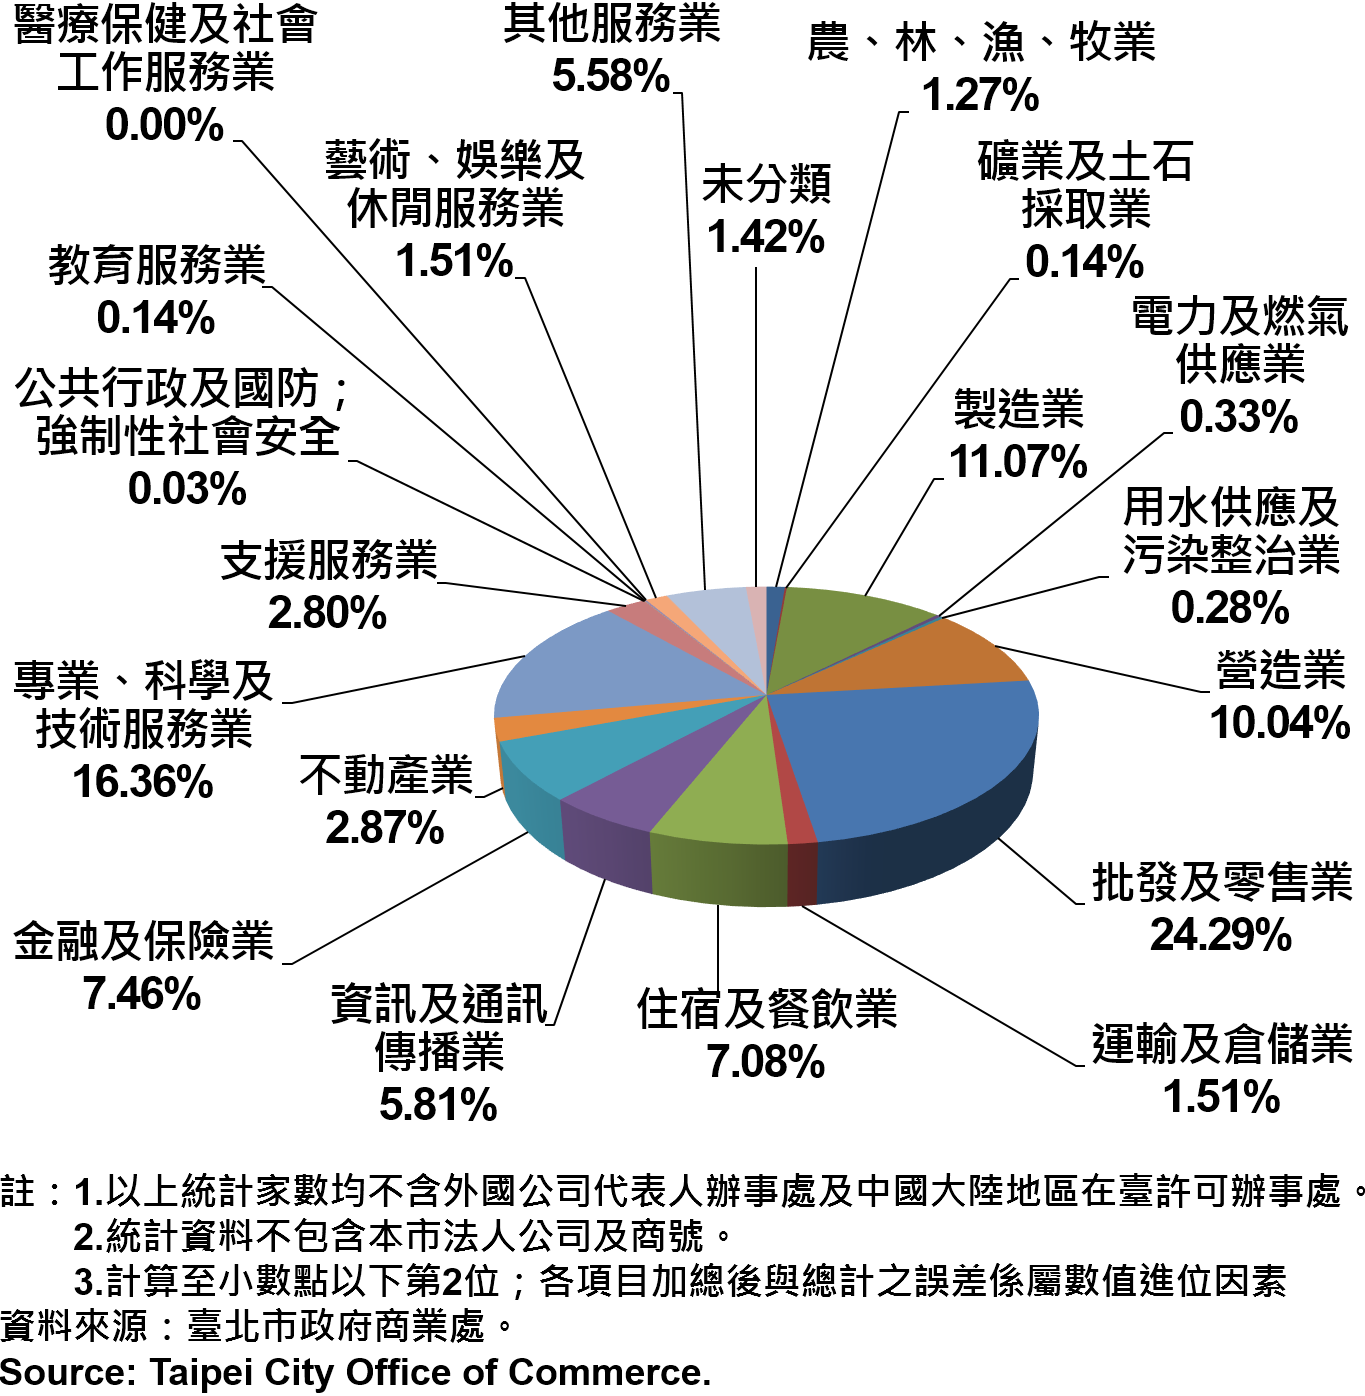 圖19、臺北市公司行號之業別分布情形—依現存家數—2017Q2 Newly Registered Companies in Taipei City by Industry - Number of Current—2017Q2